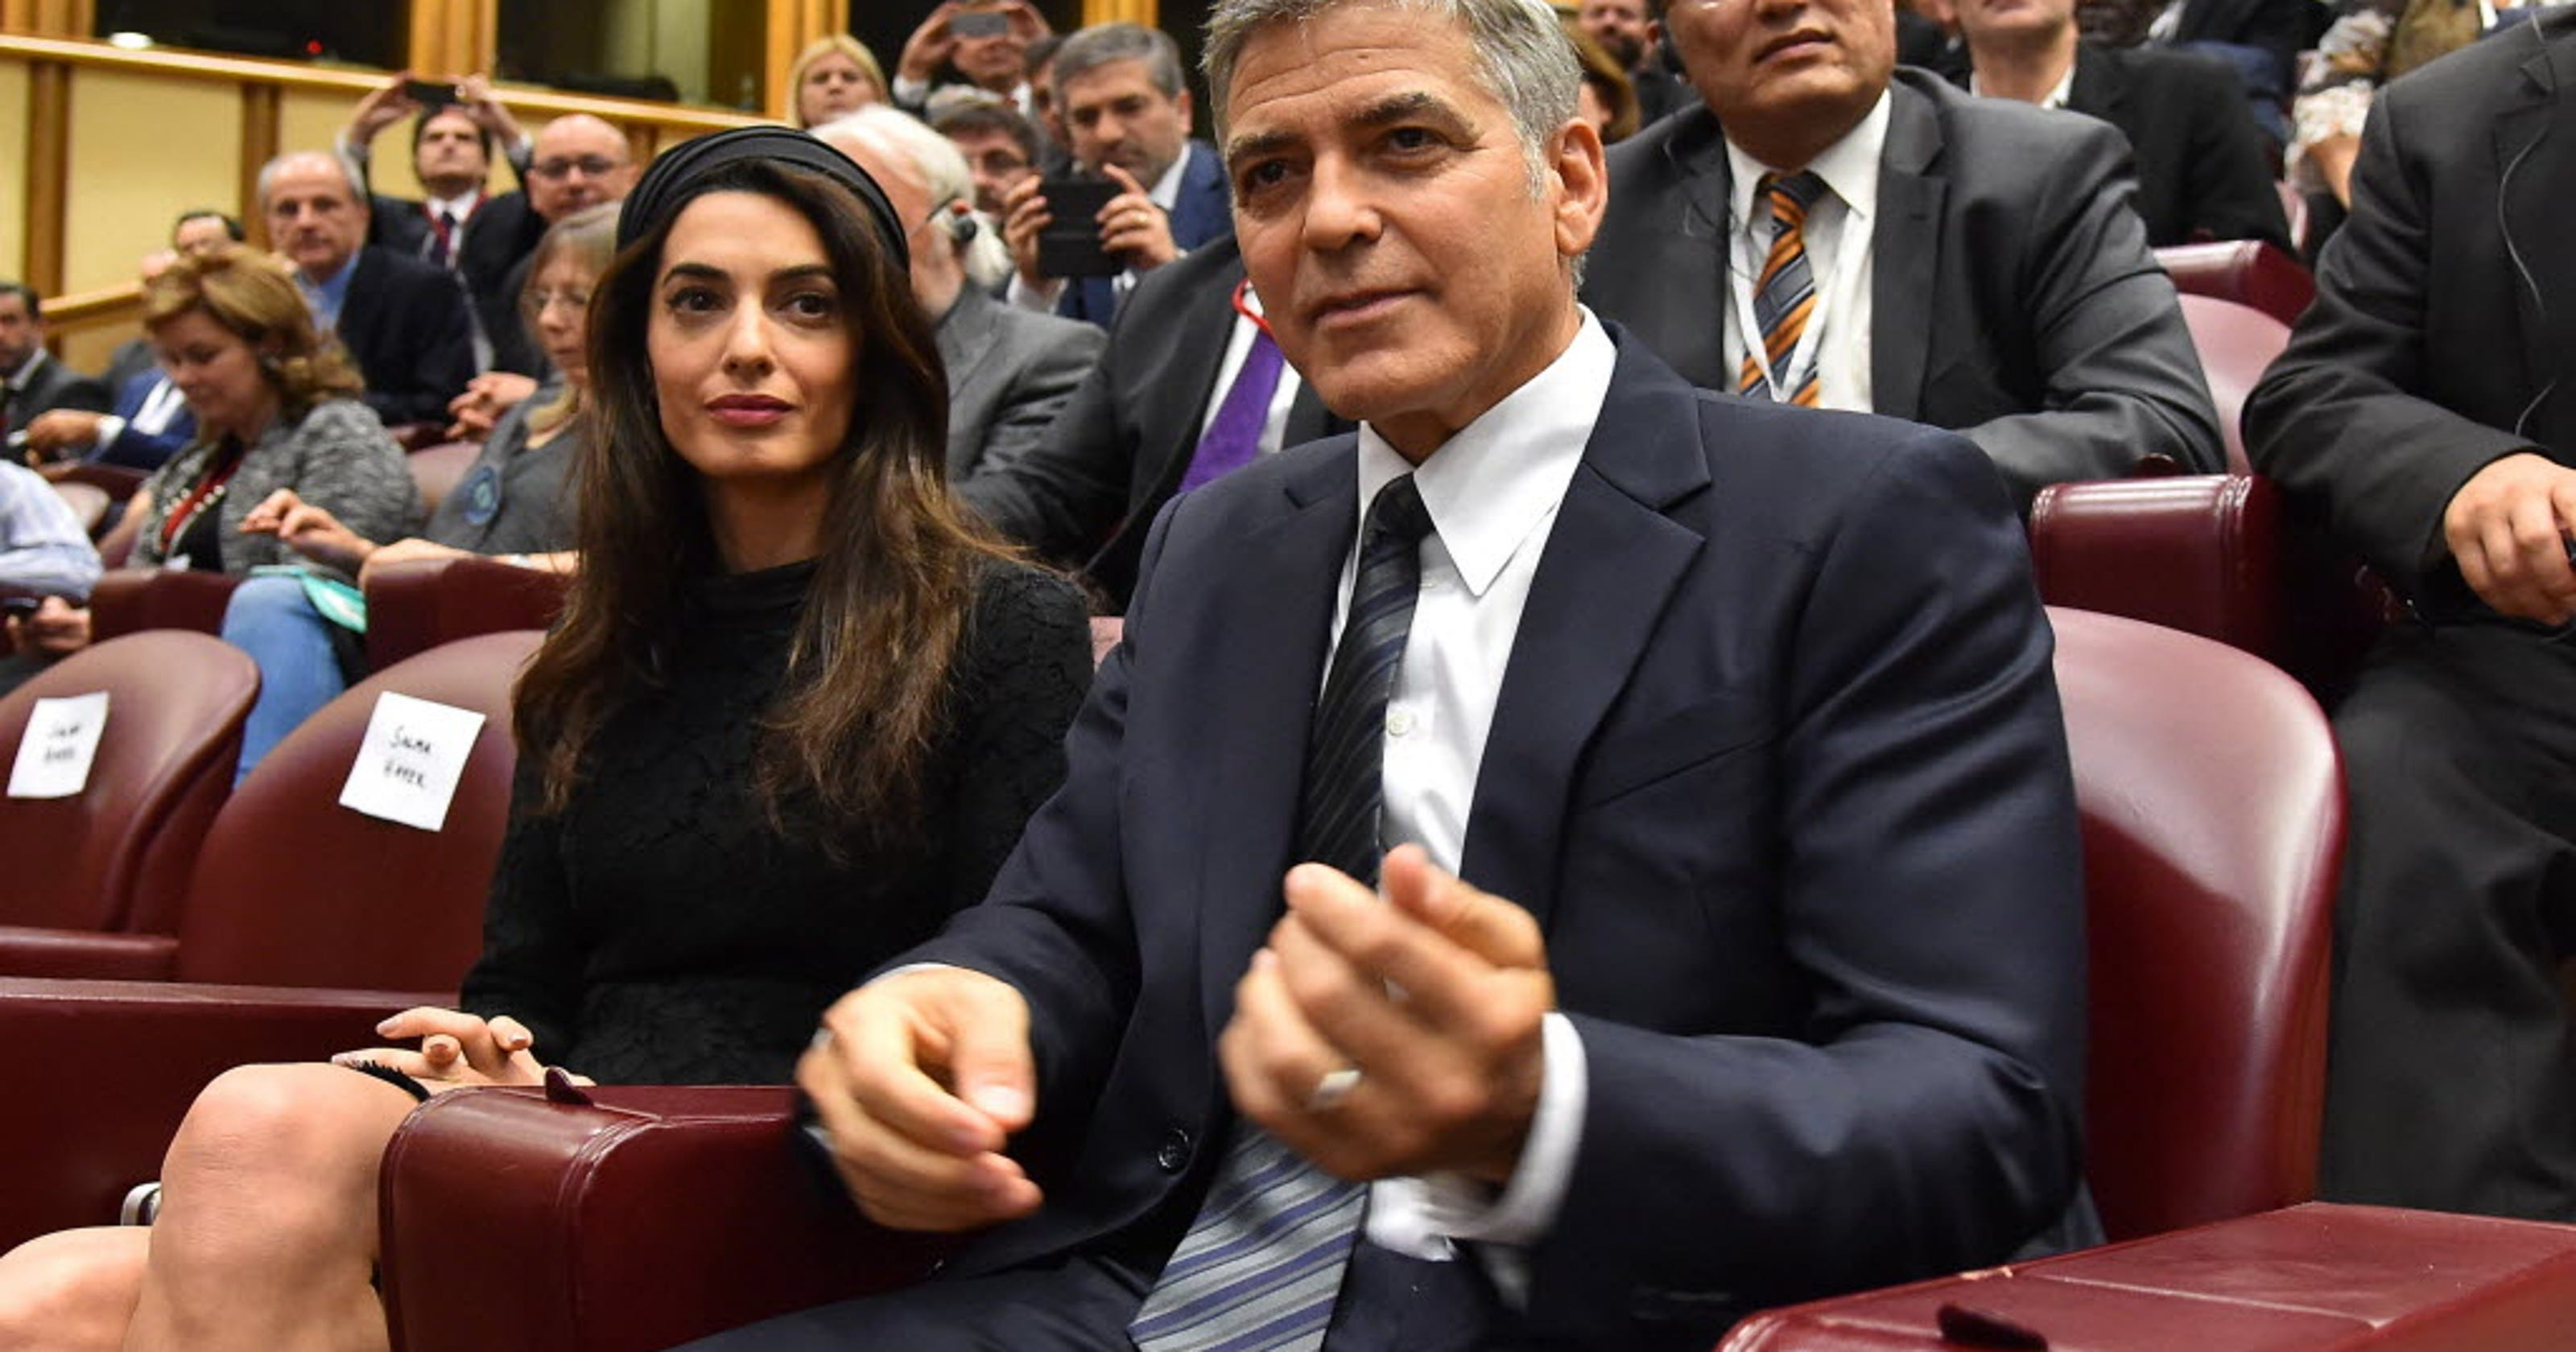 Google to help George and Amal Clooney educate Syrian